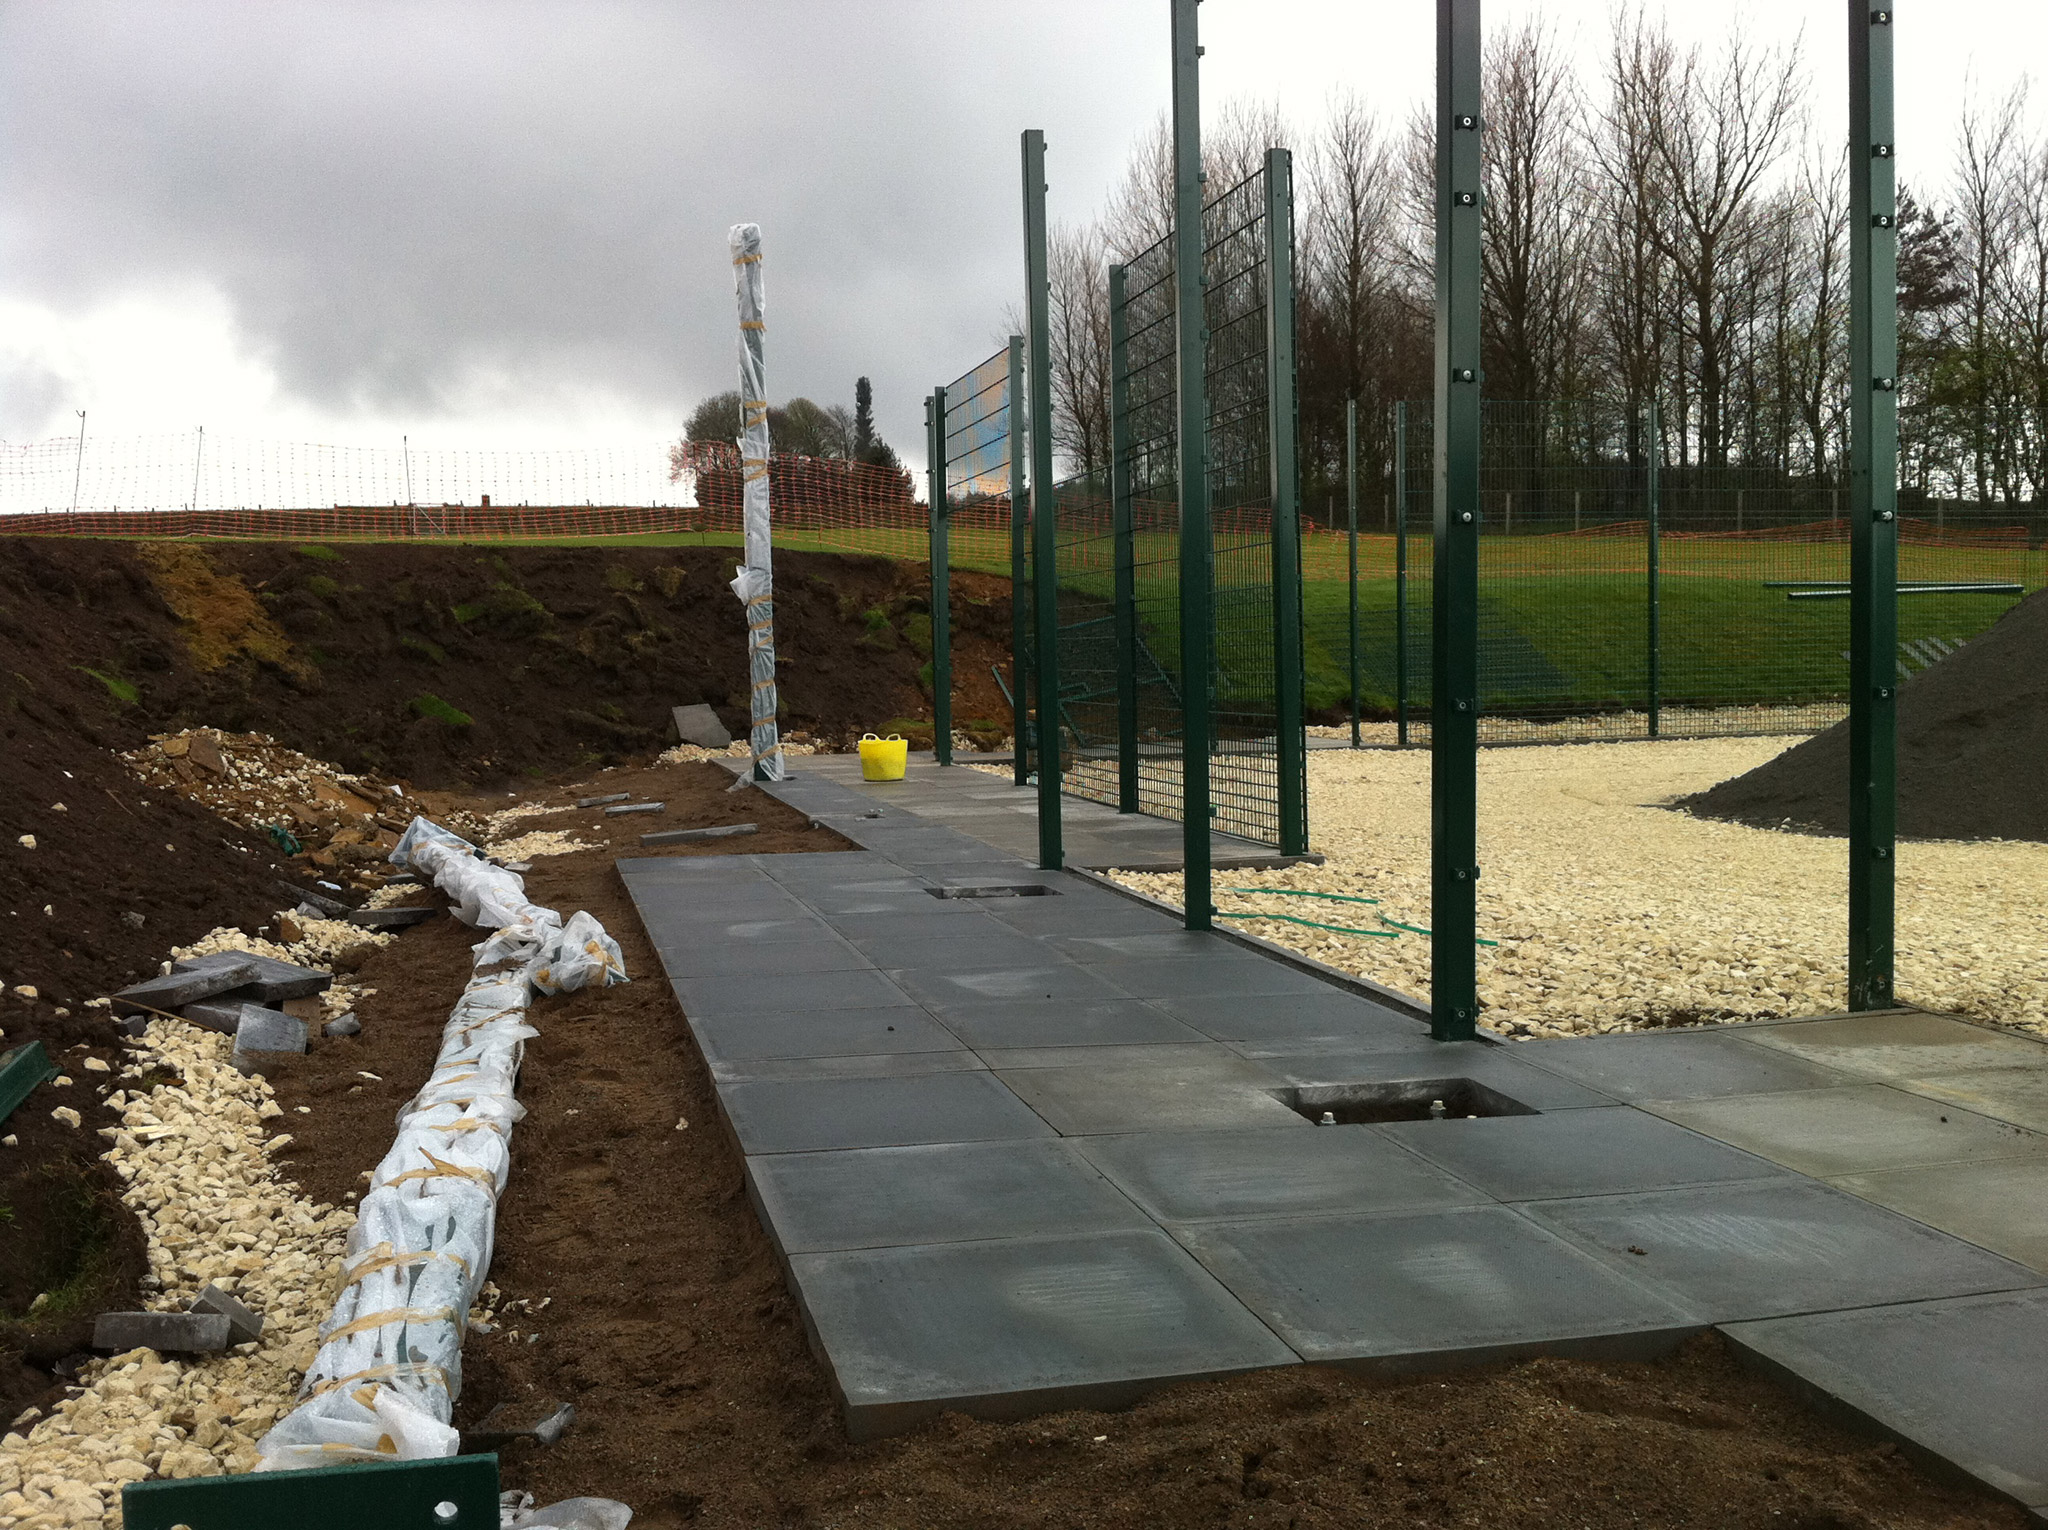 Birkdale School Muga Goal Area under Construcion